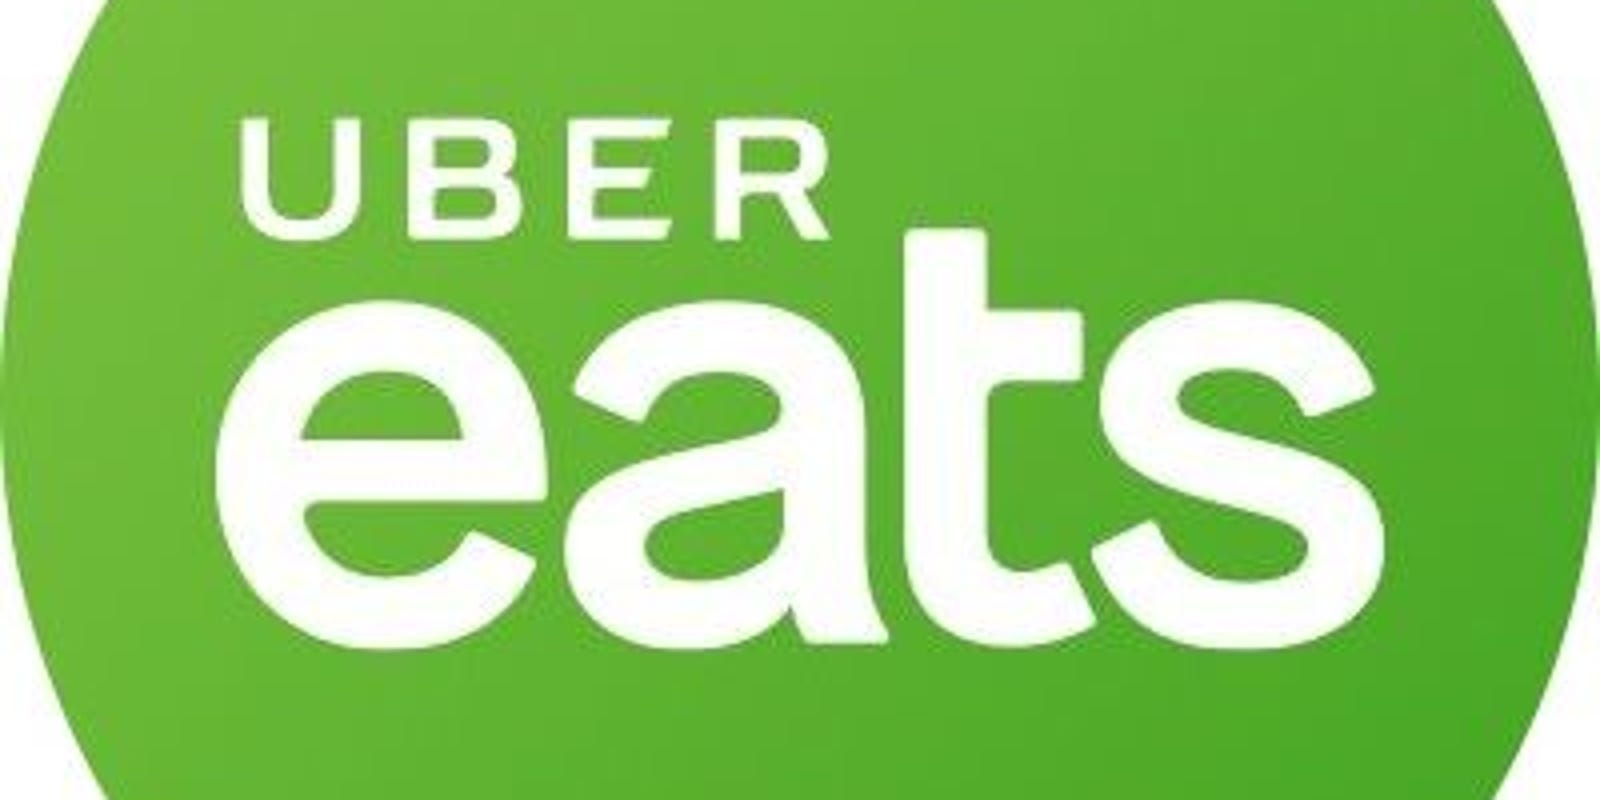 Order Food Delivery with Uber Eats